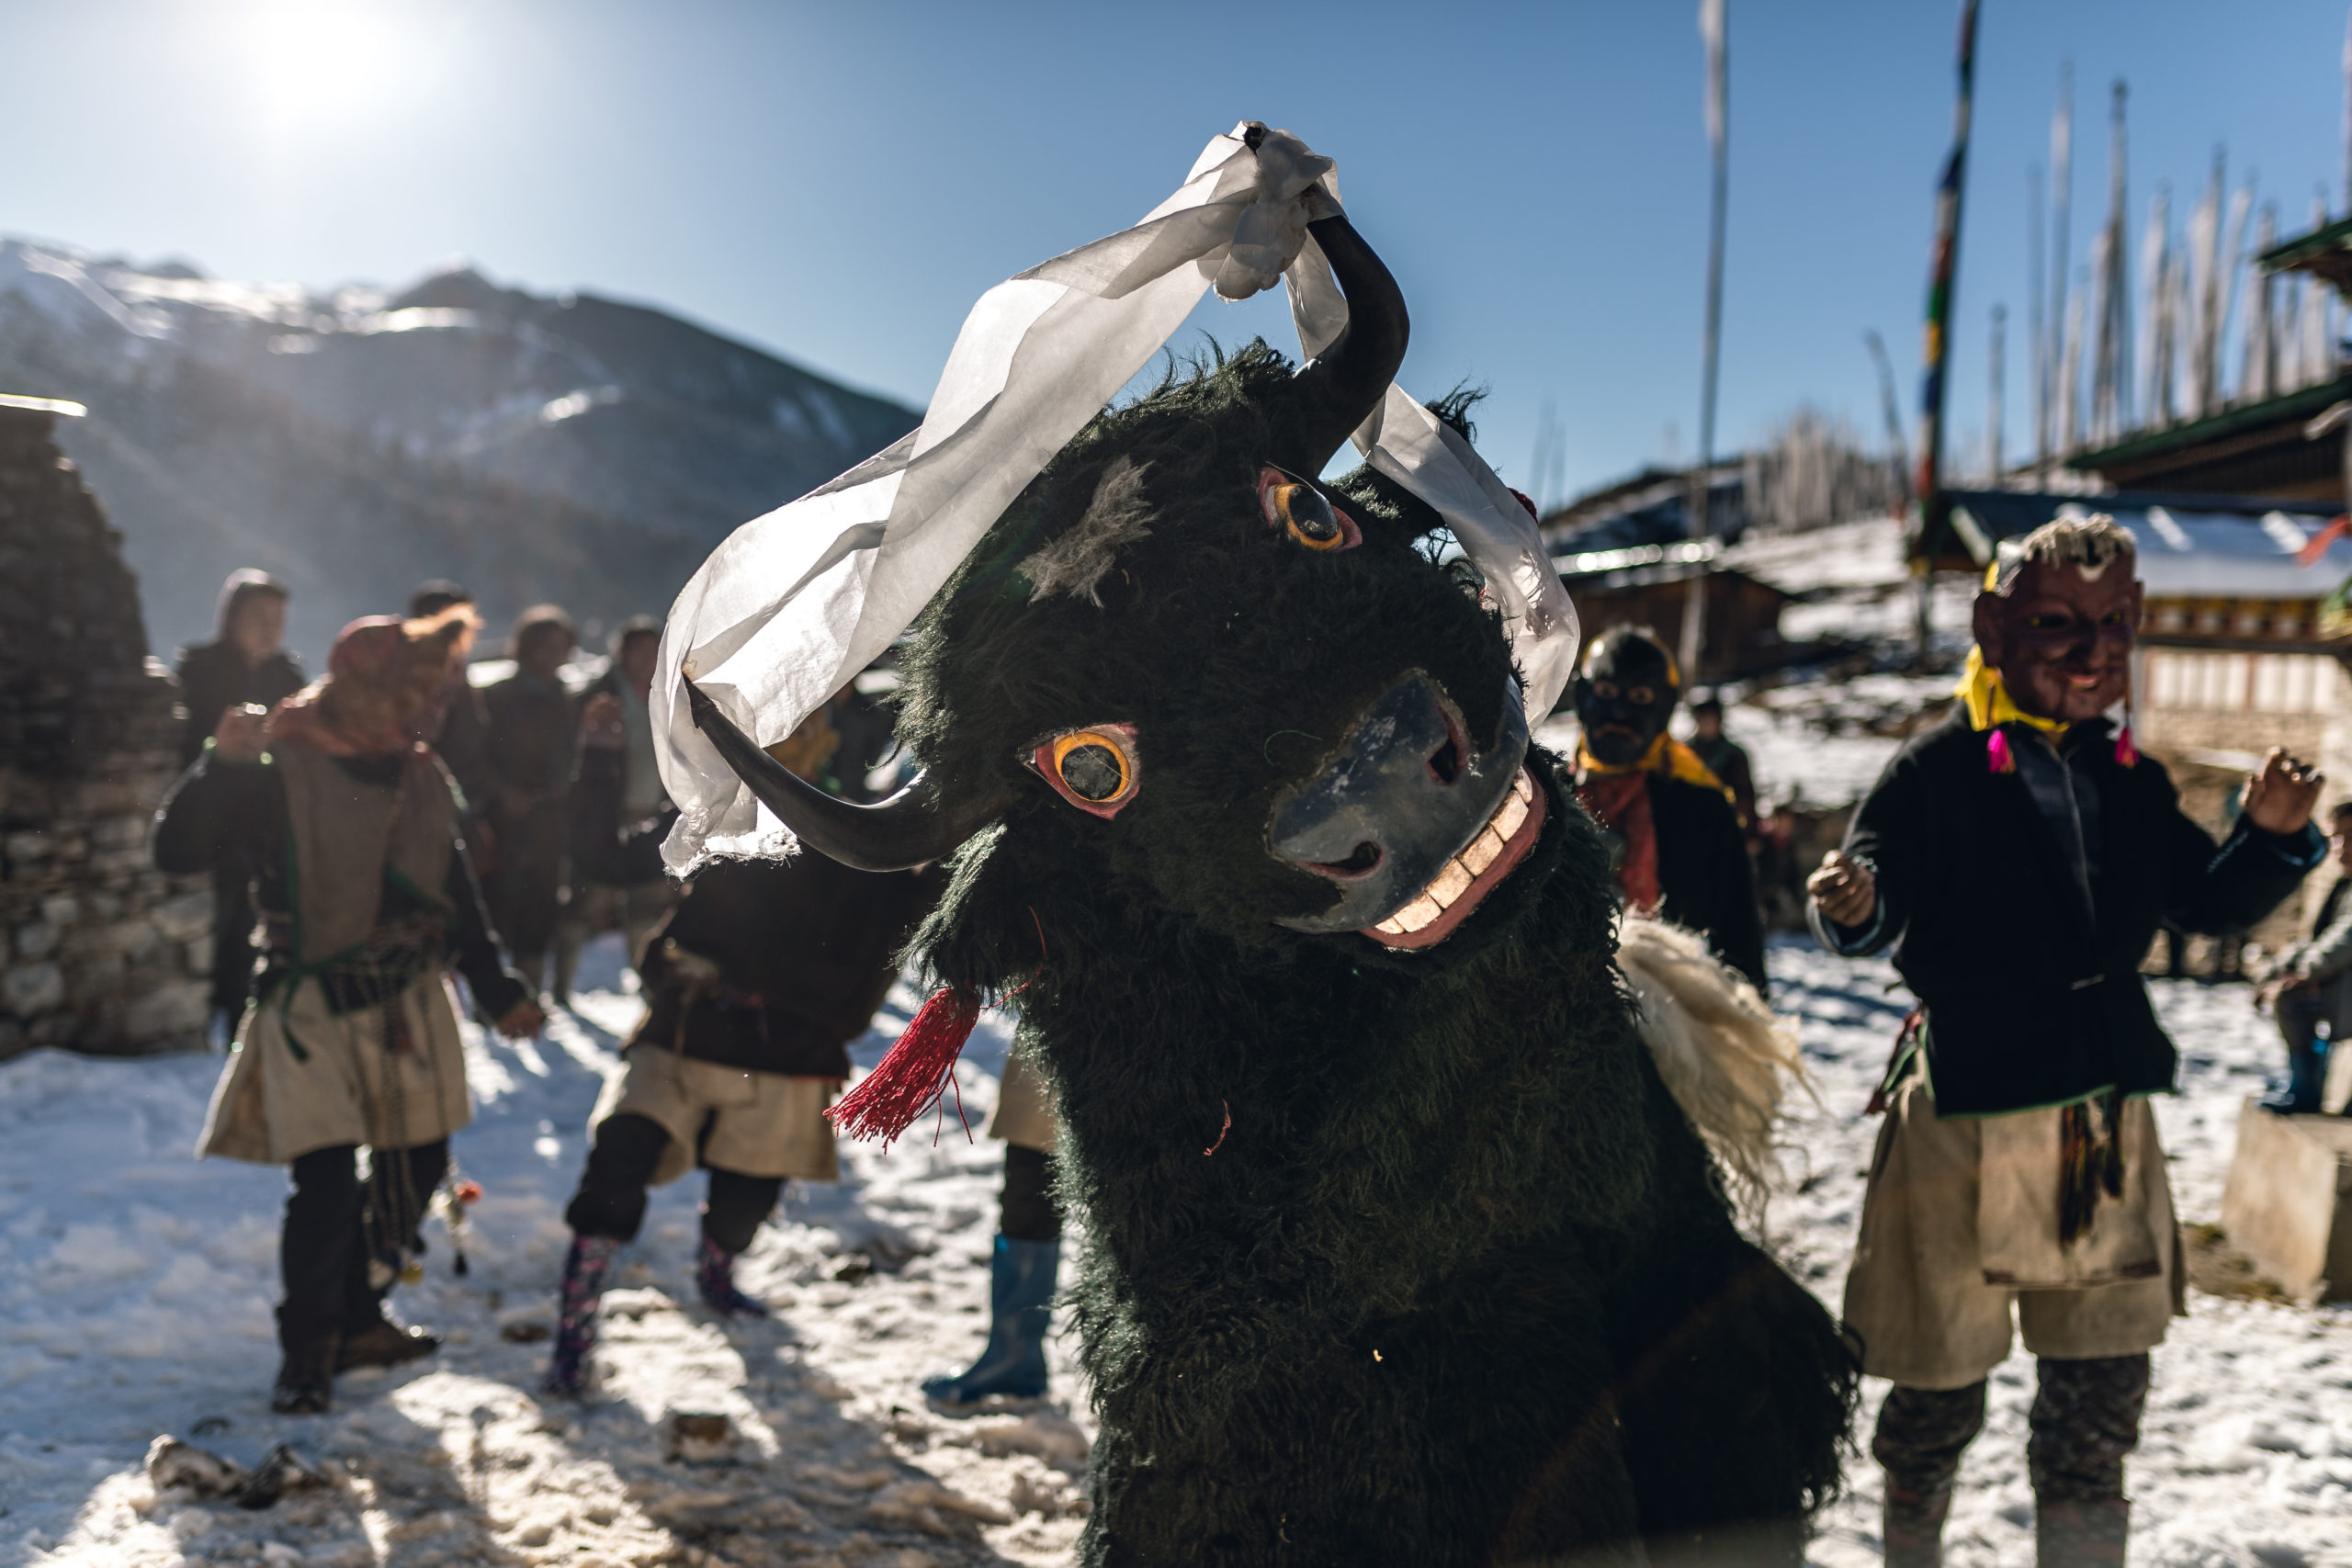 Photography of Bhutan's Traditional Masked Dancers Yak dance in Merak